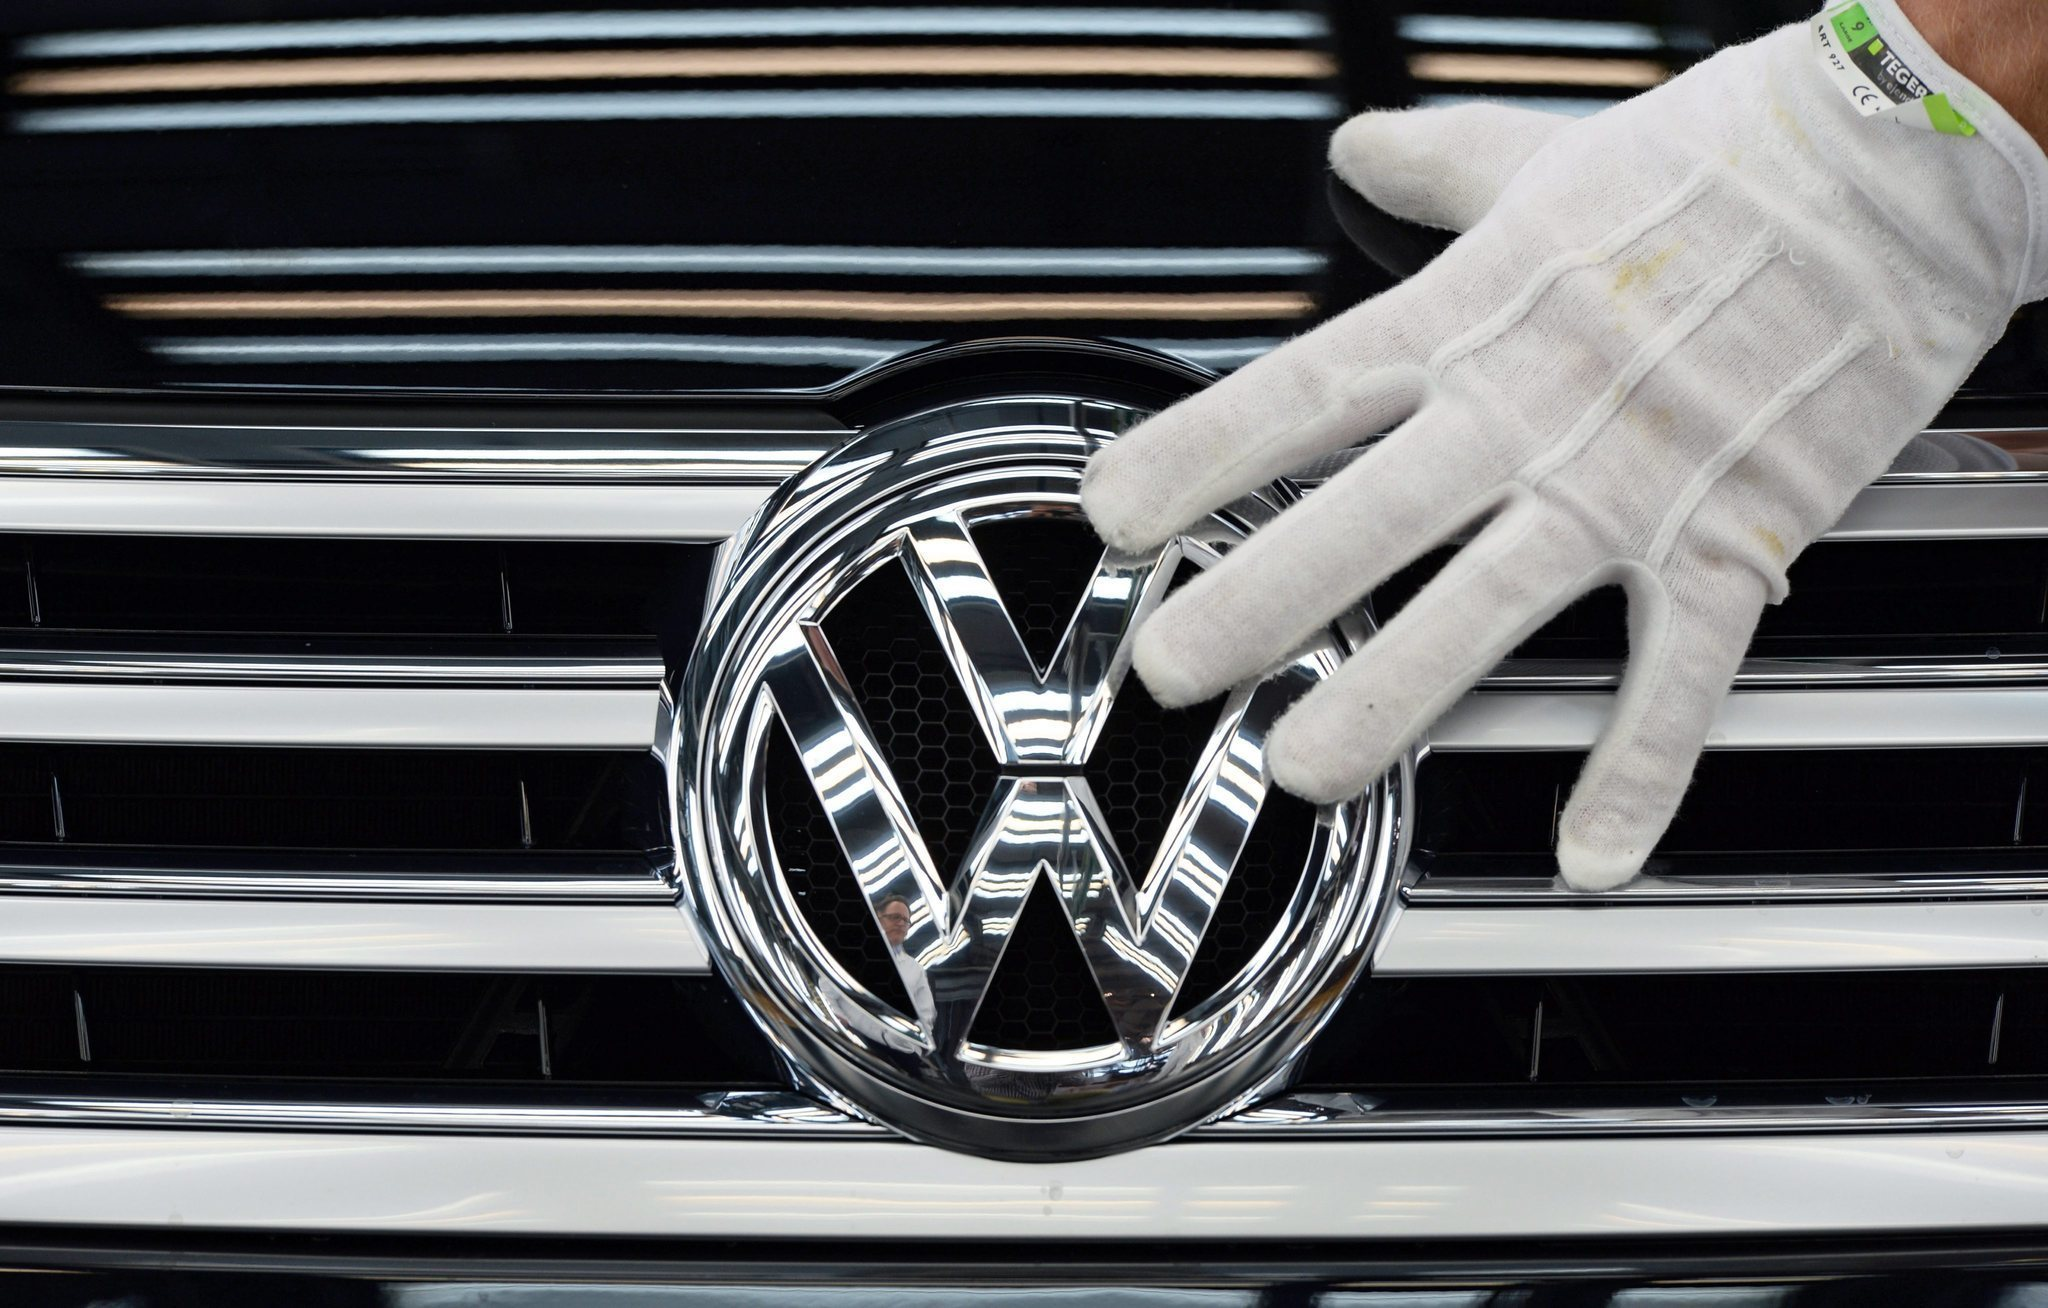 Volkswagen to shed 30,000 jobs to cut costs after emissions-cheating scandal - LA Times